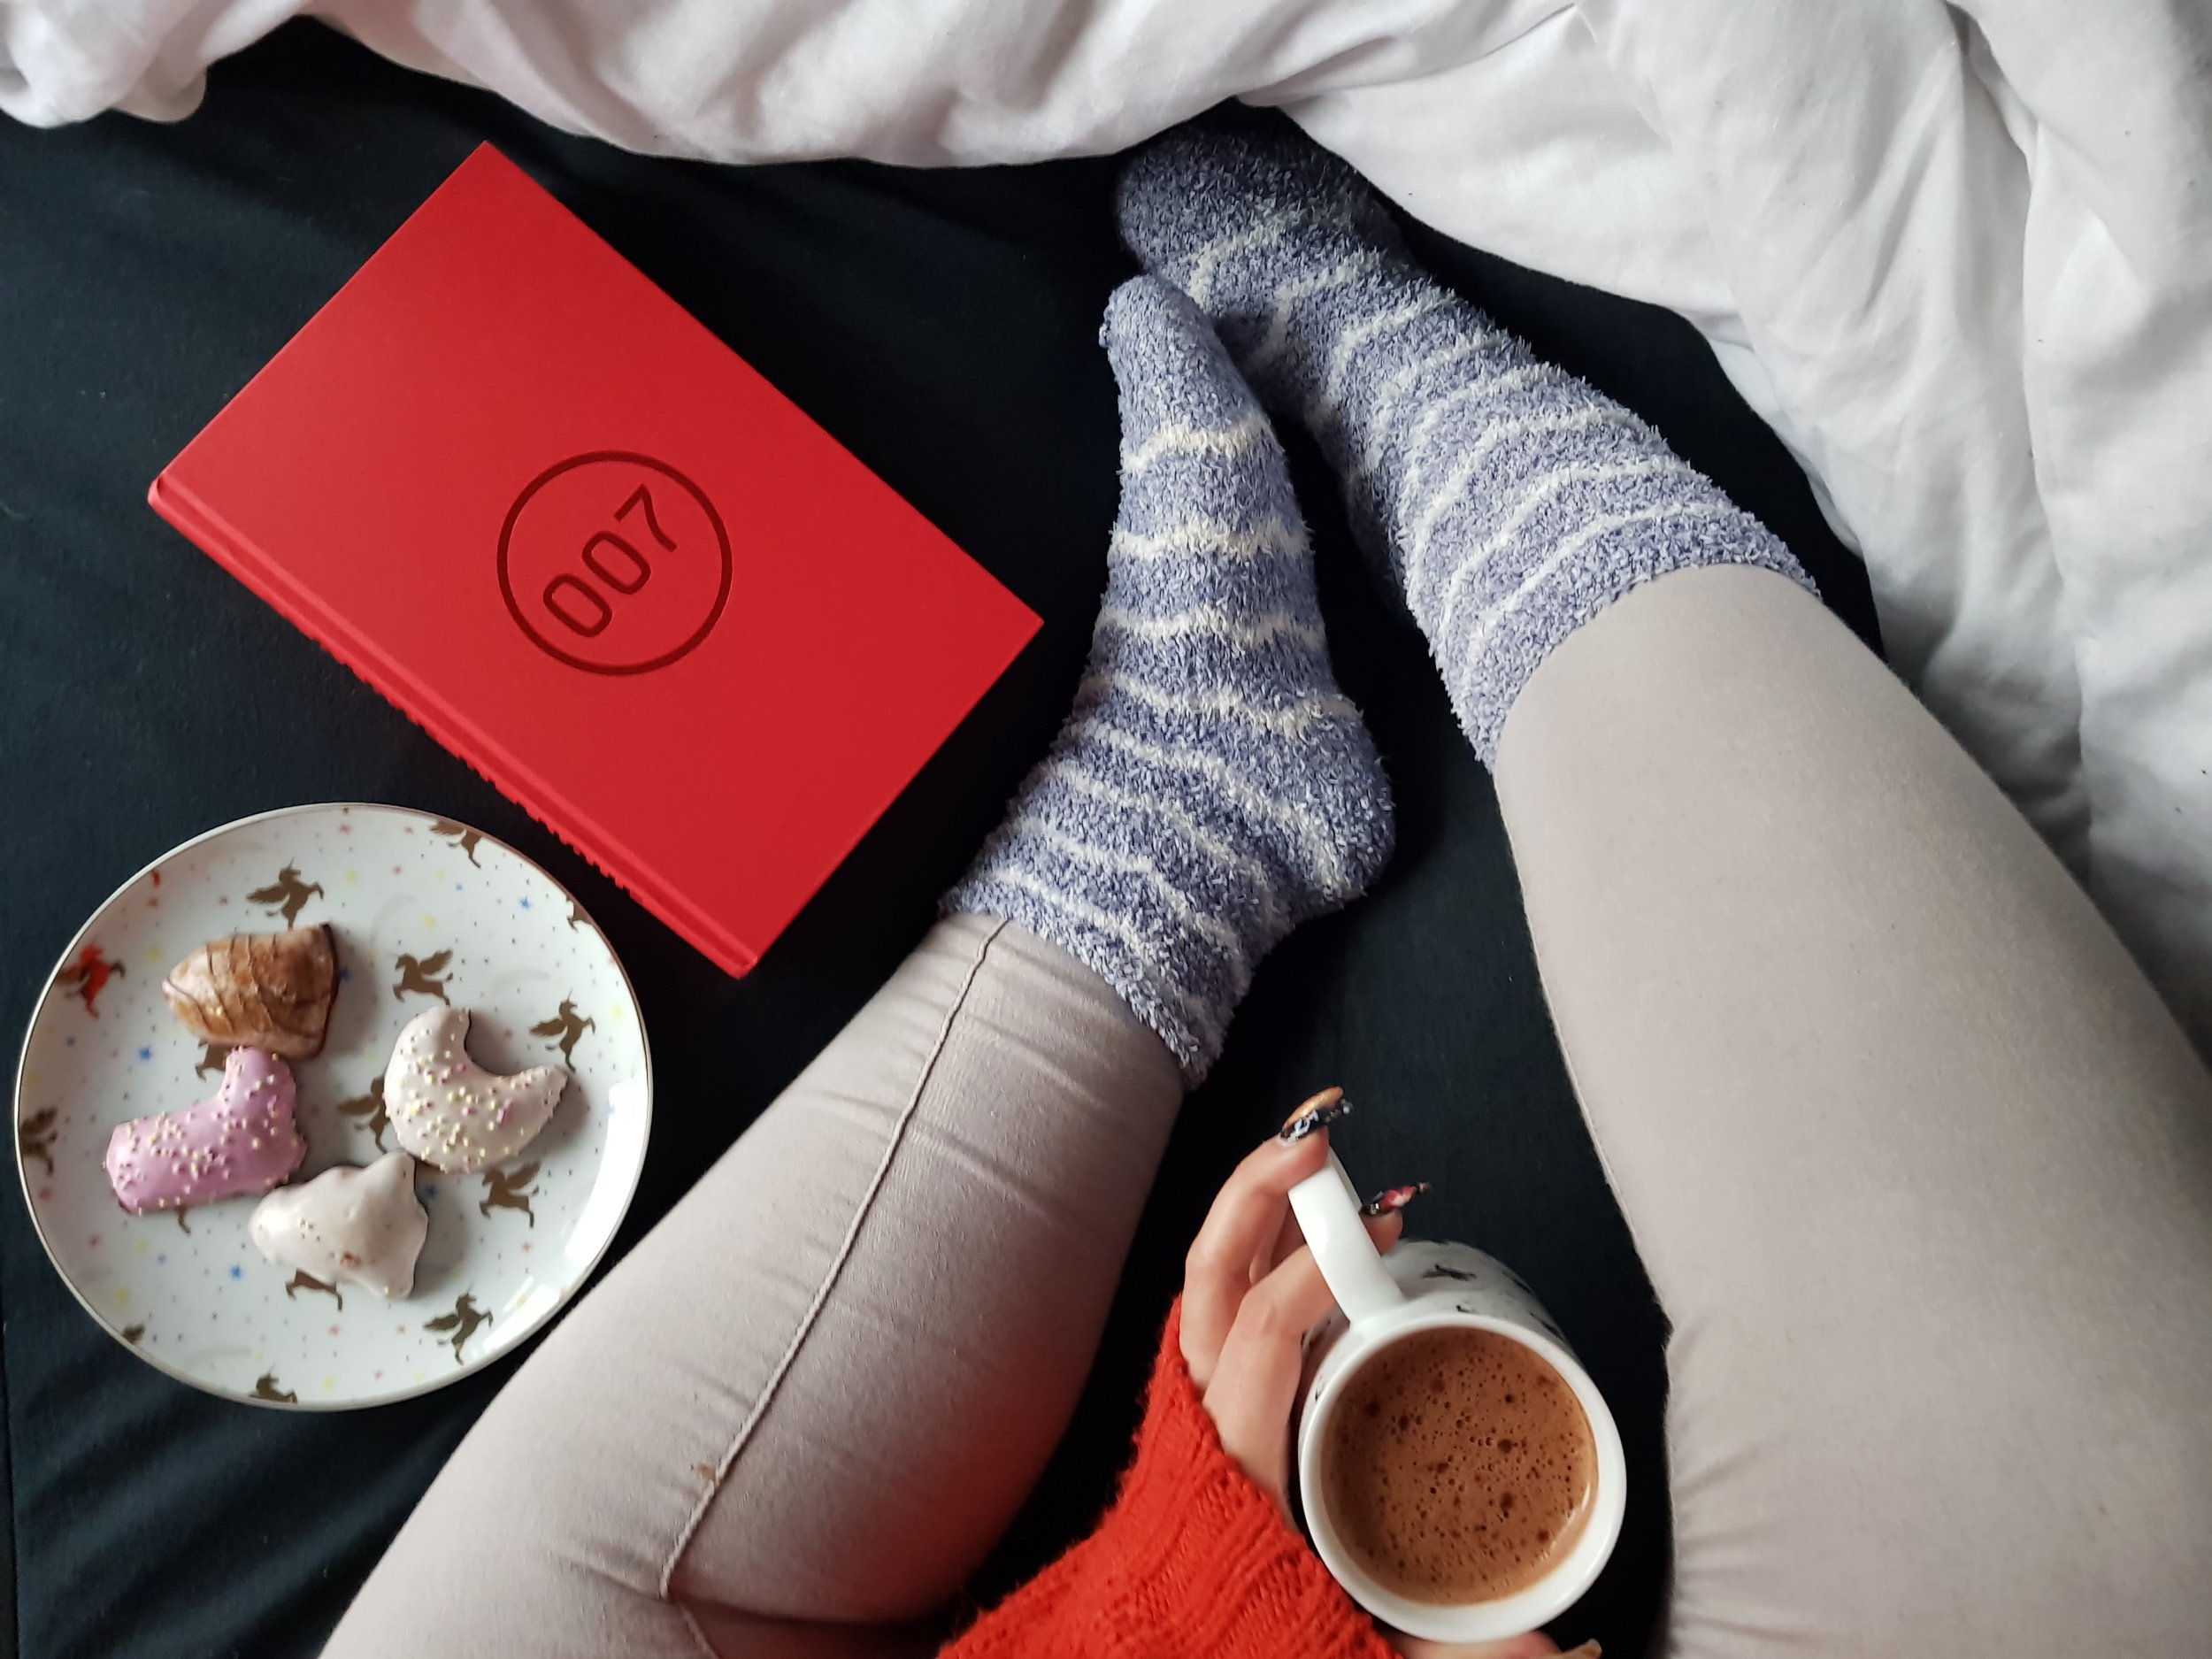 Relax and unwind with a book, drink and biscuits